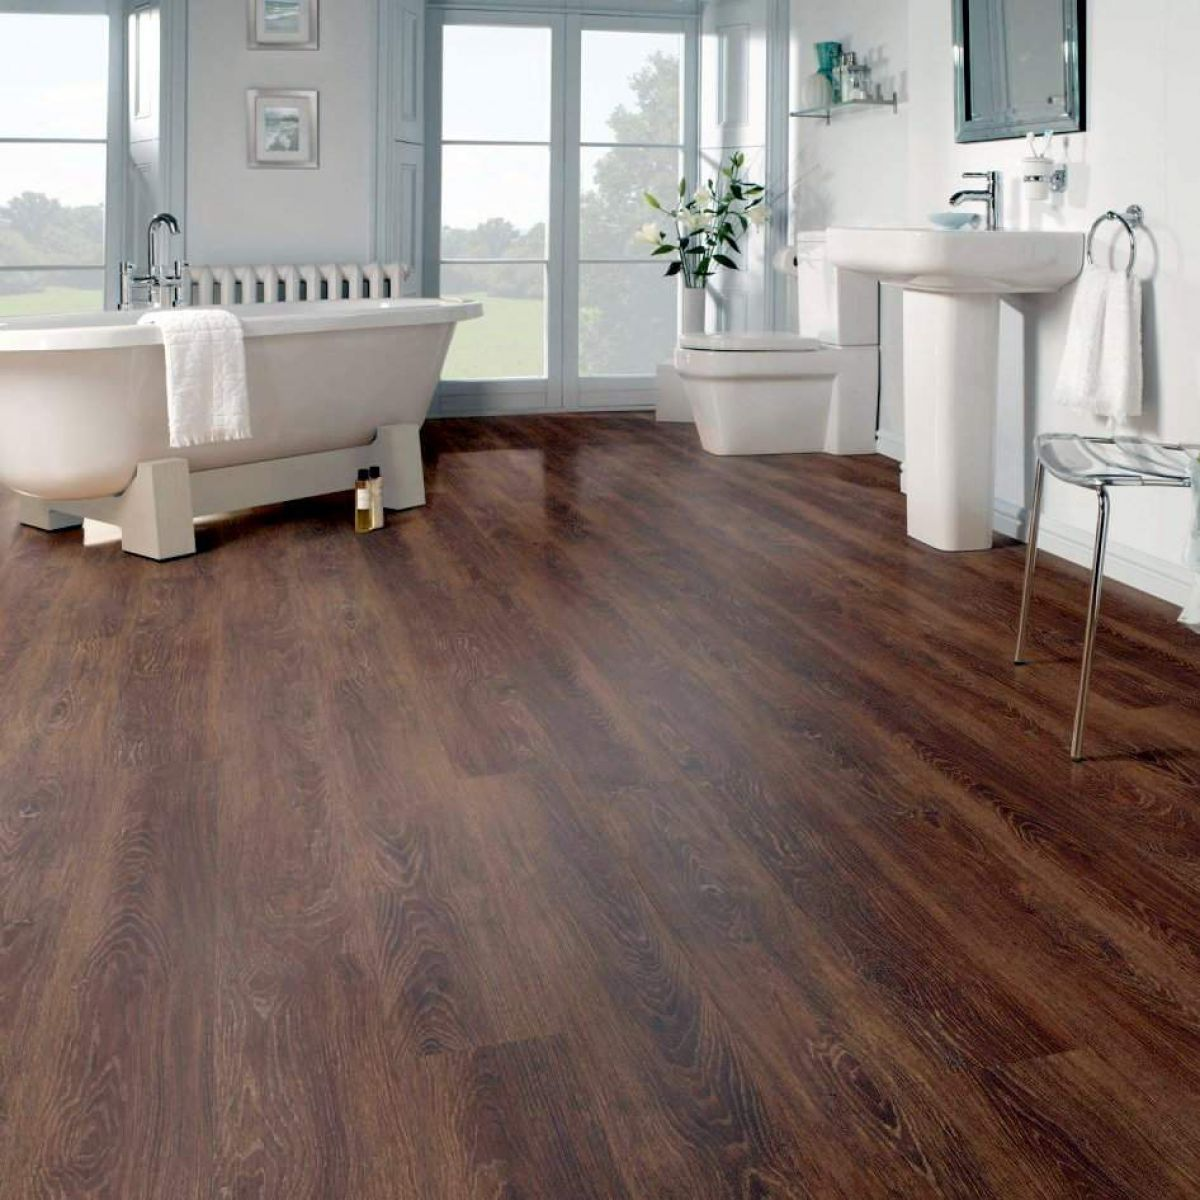 51 Old Fashioned Wood Flooring In Bathroom Composition